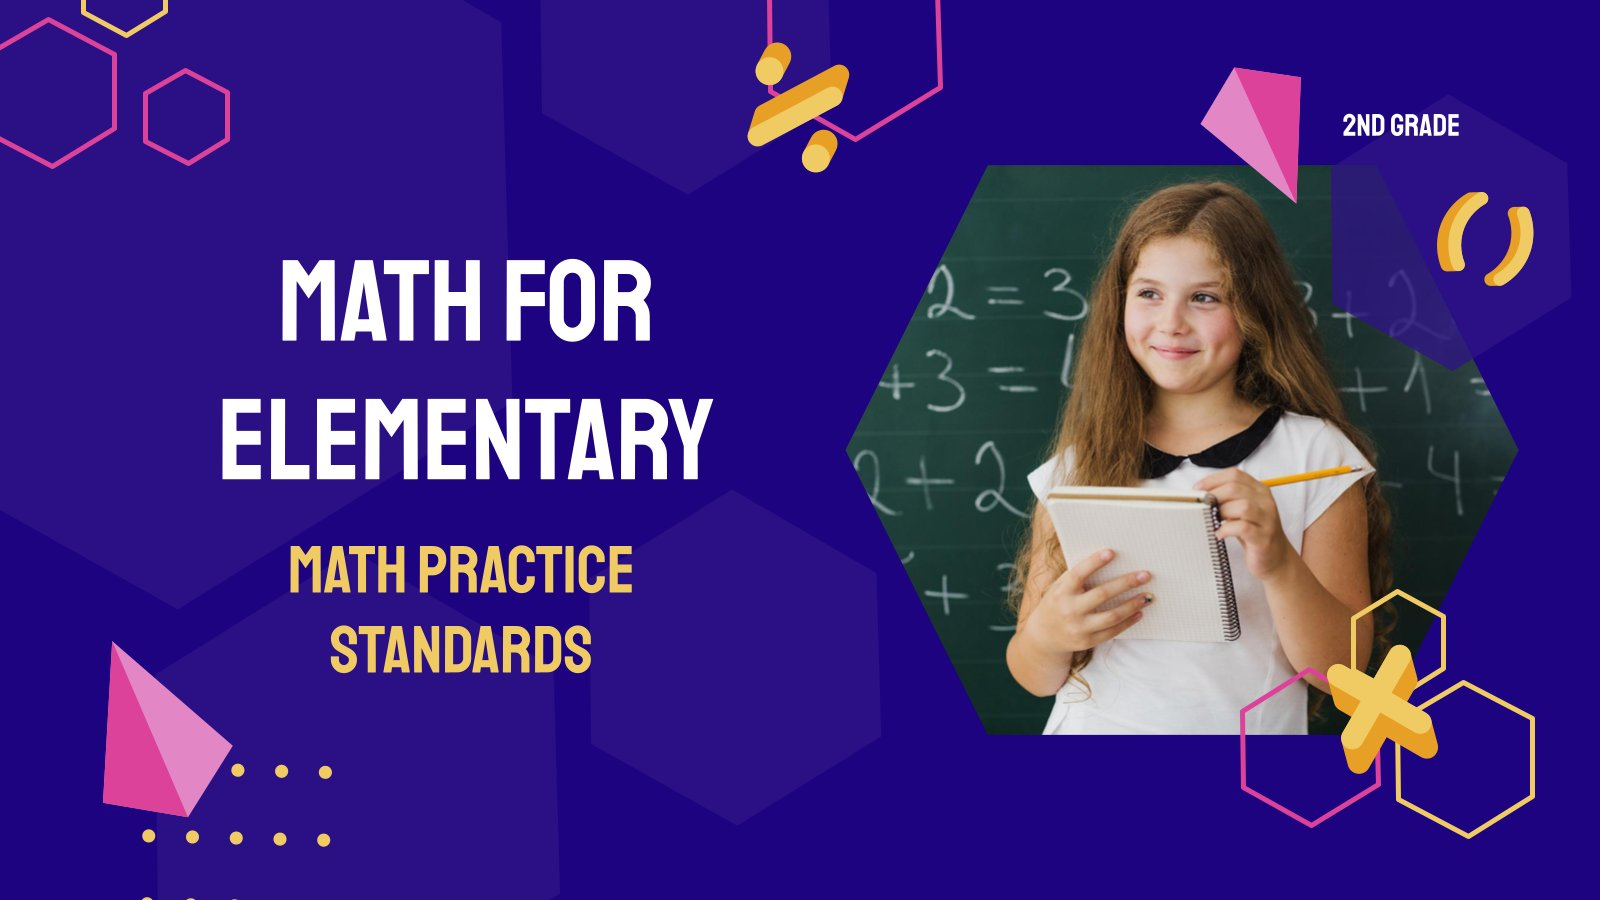 Math Practice Standards - Math for Elementary 2nd Grade presentation template